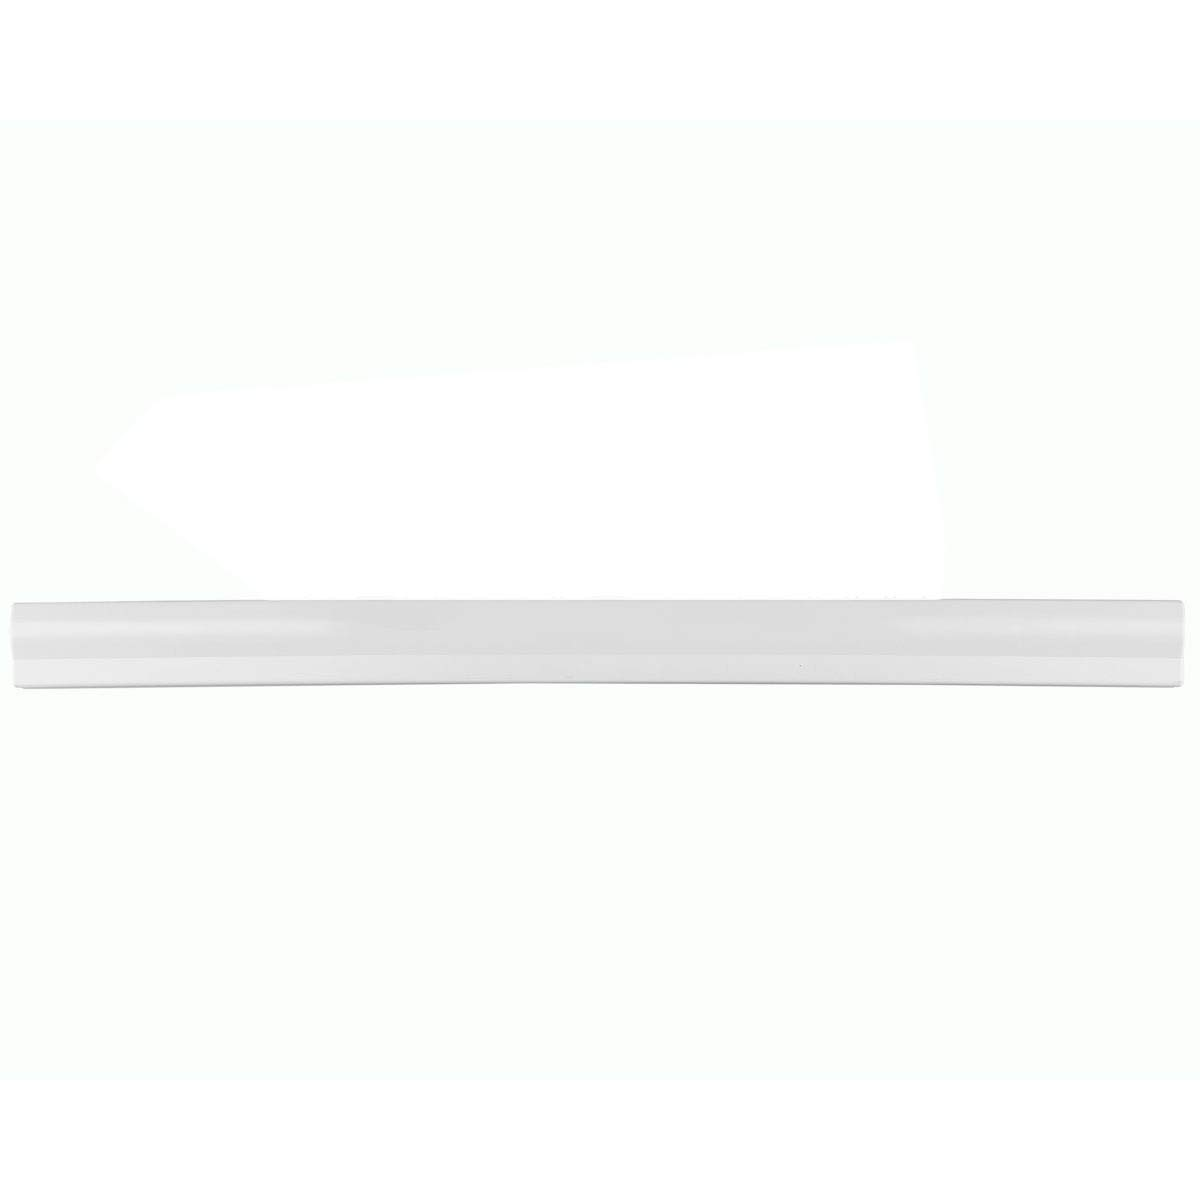 Frontal Blanco PVC Campana extractora Teka CNL2002 TL1.62 61836042: Amazon.es